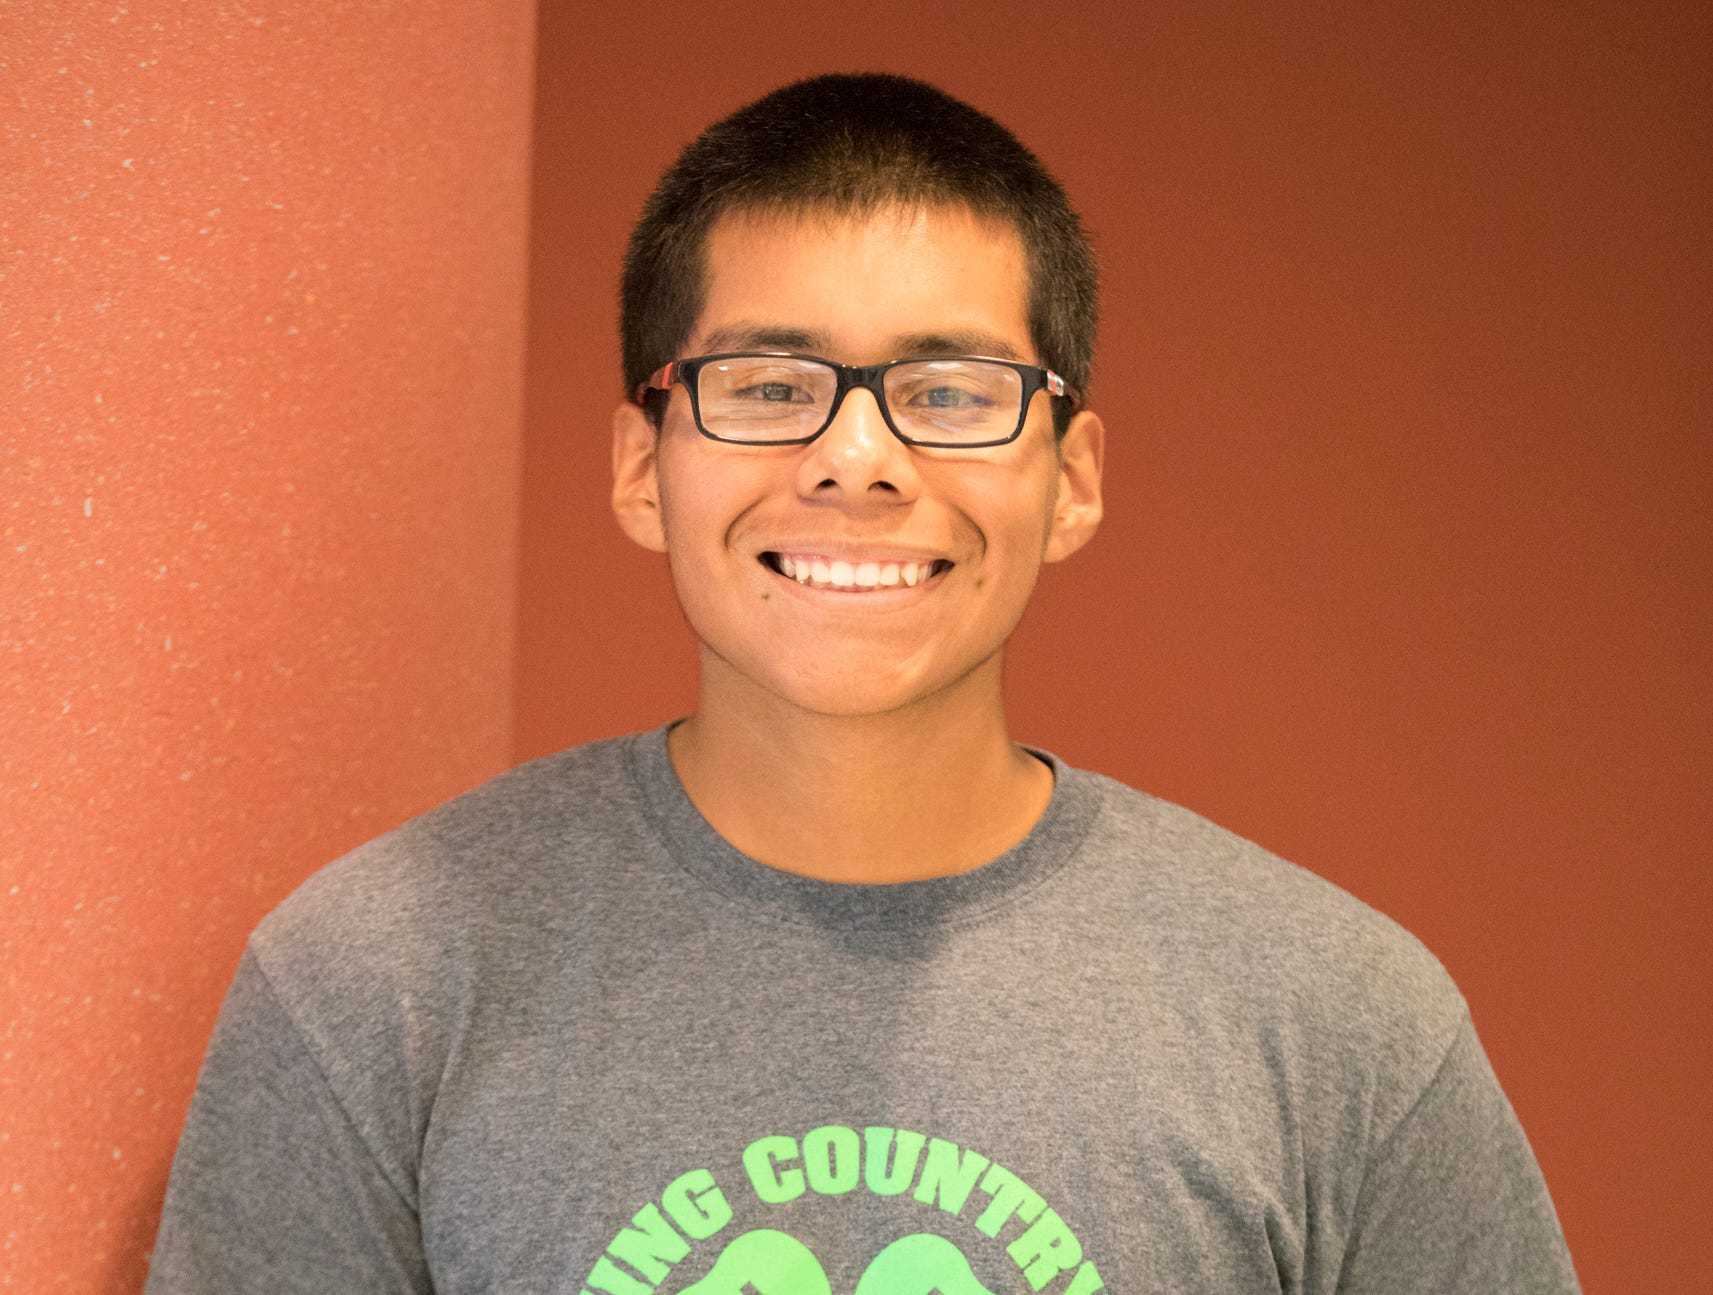 James Shuman, 16, Amazing Country Kids. Project: Entering Electronics